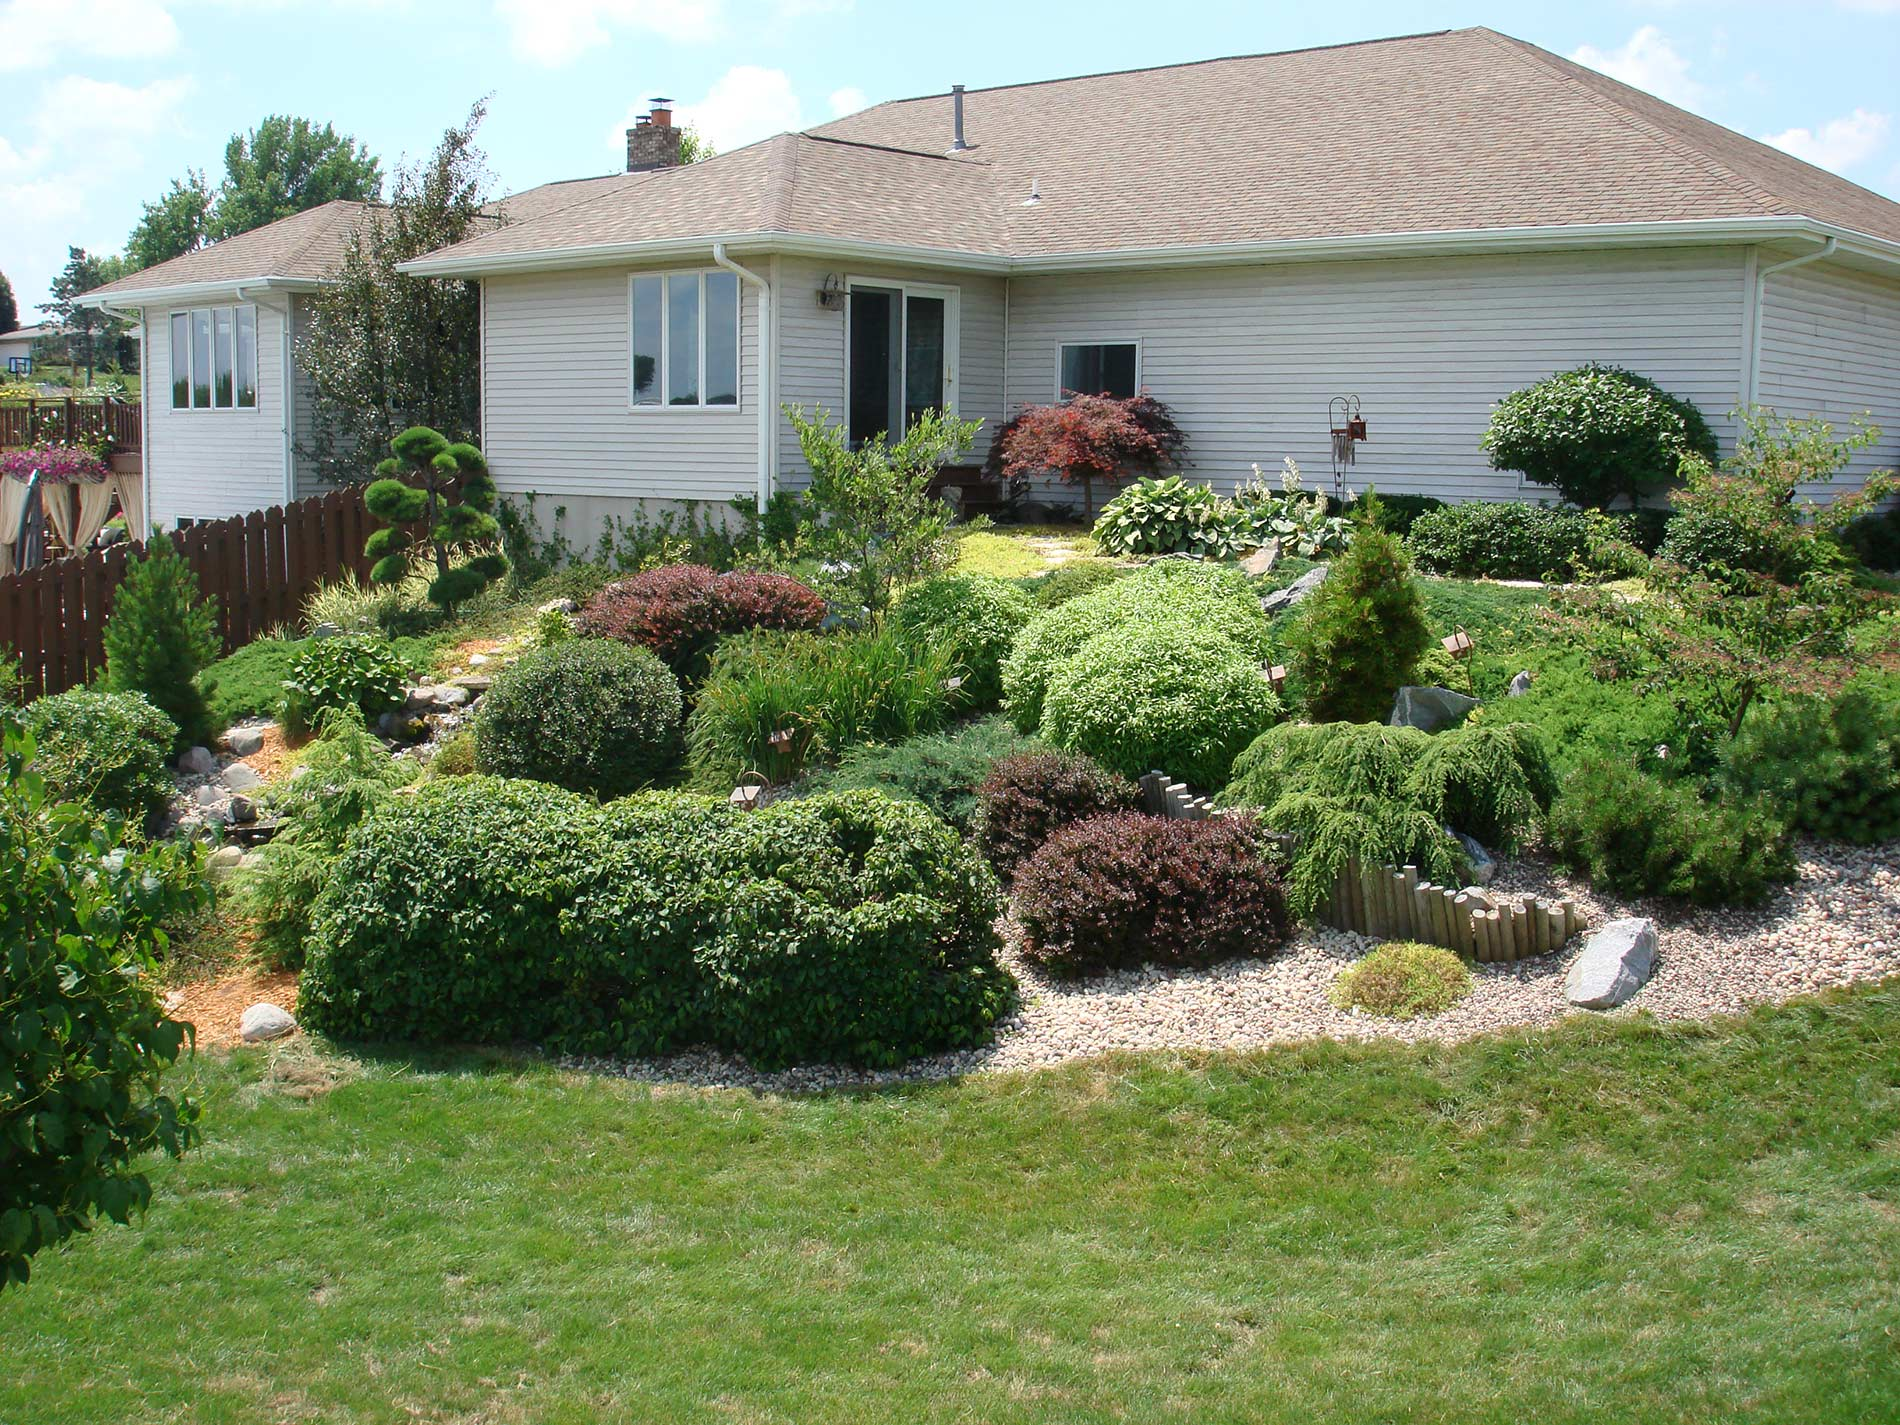 Landscaping service and constant maintenance